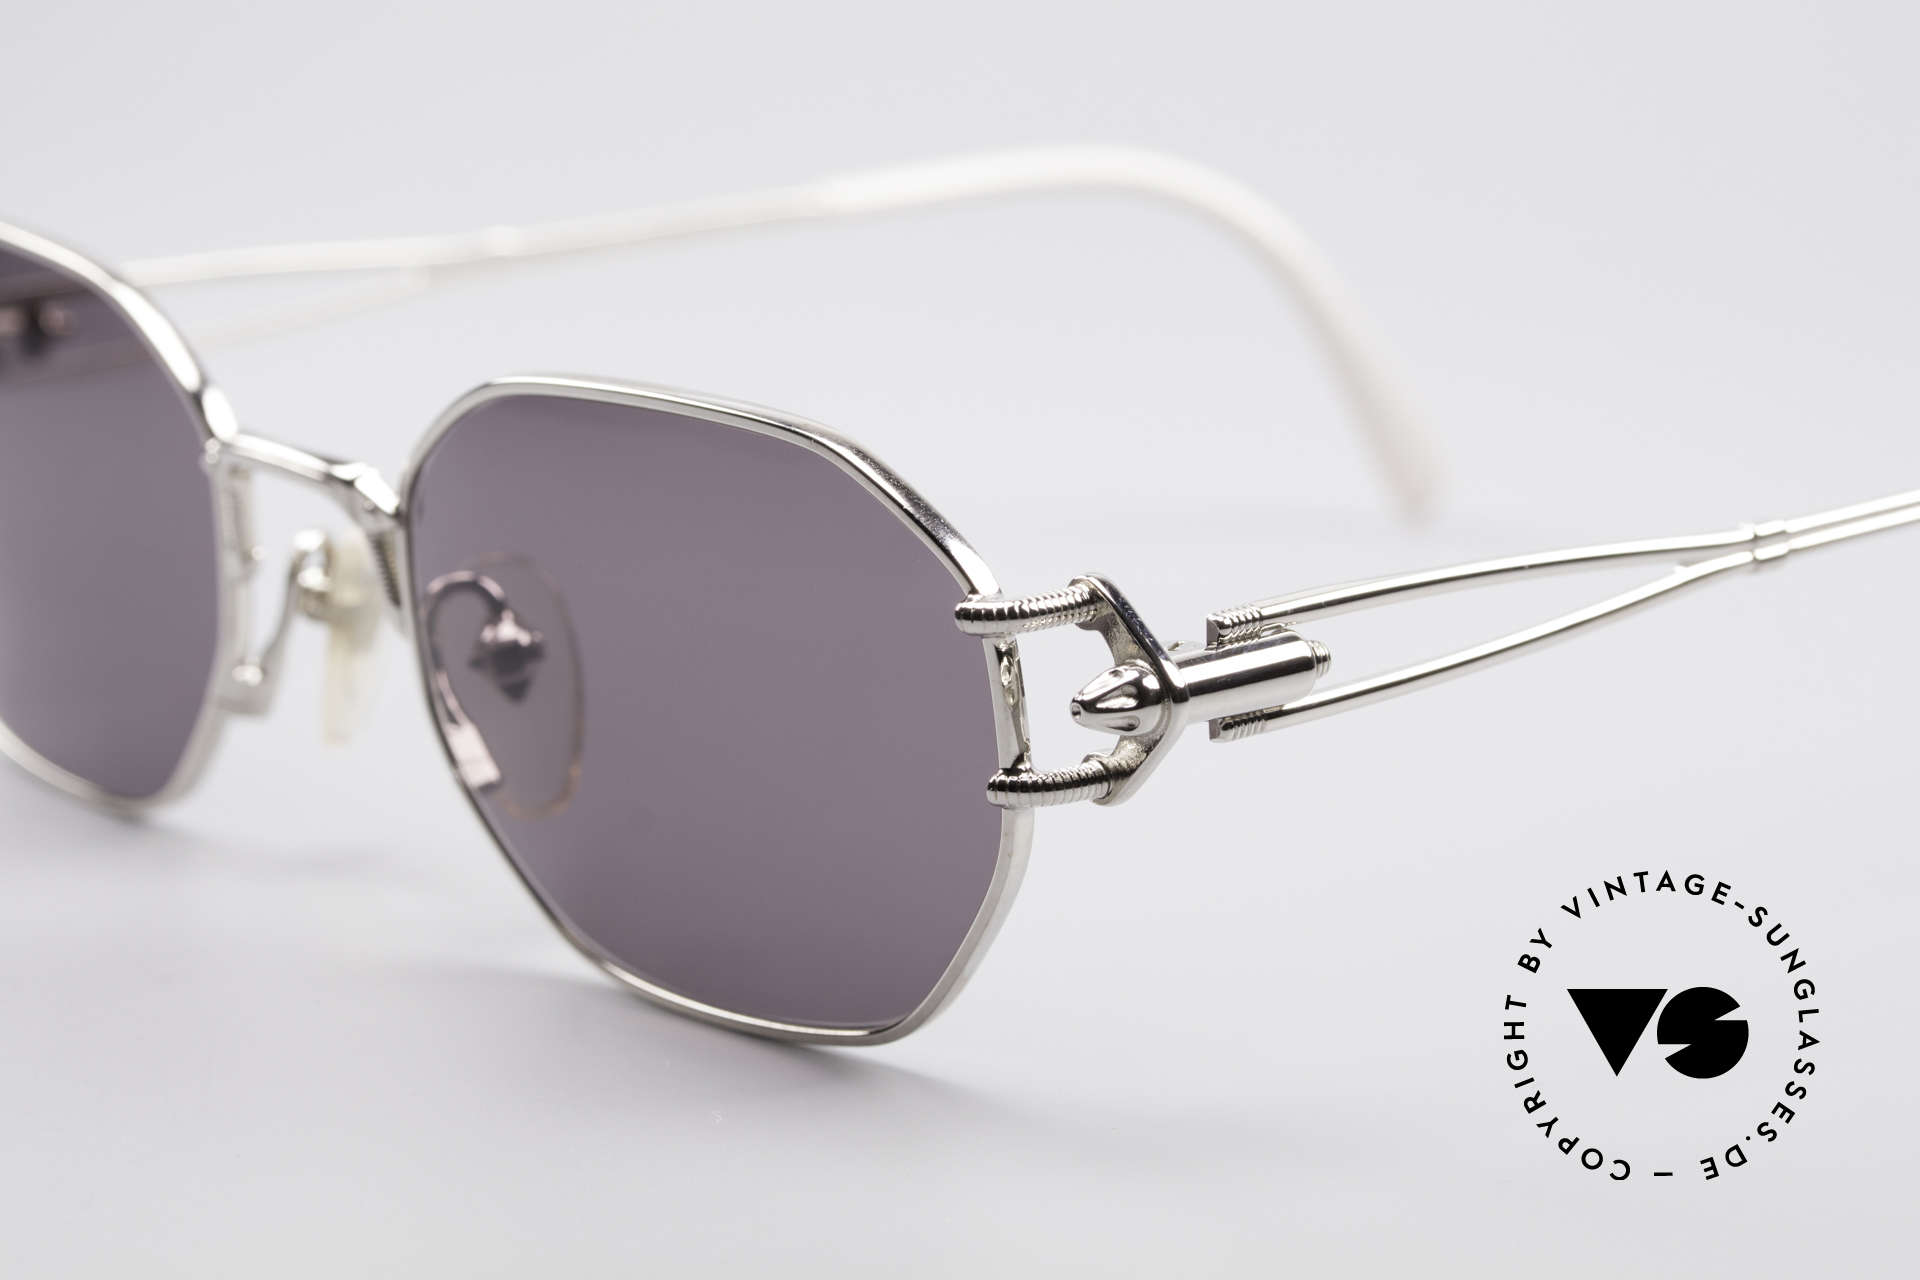 Jean Paul Gaultier 55-6106 90's Vintage Sunglasses, high-end frame (made in Japan) & 100% UV protection, Made for Men and Women